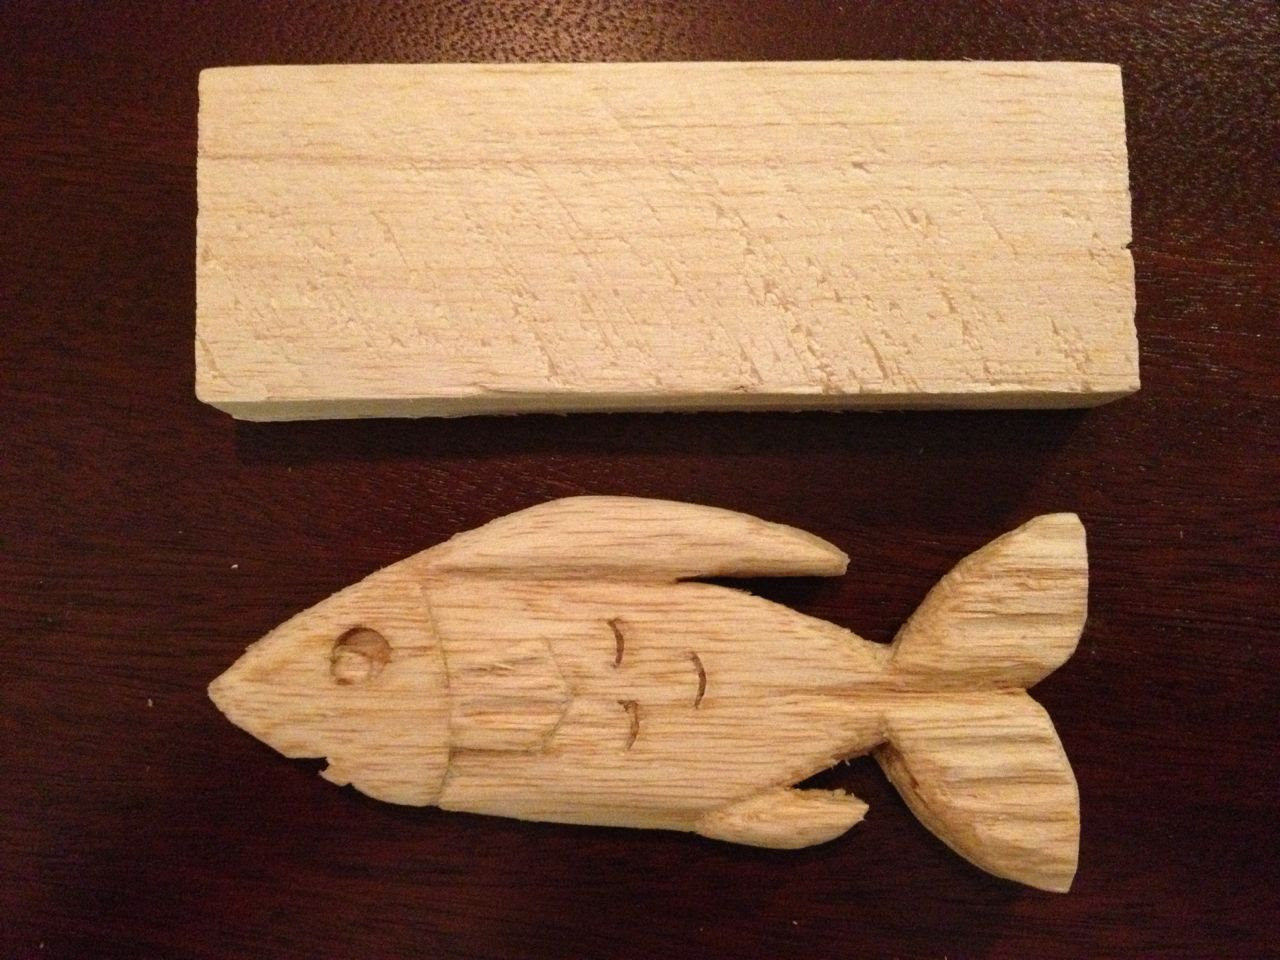 Simple Wood Carving Wood Carving Hd Images